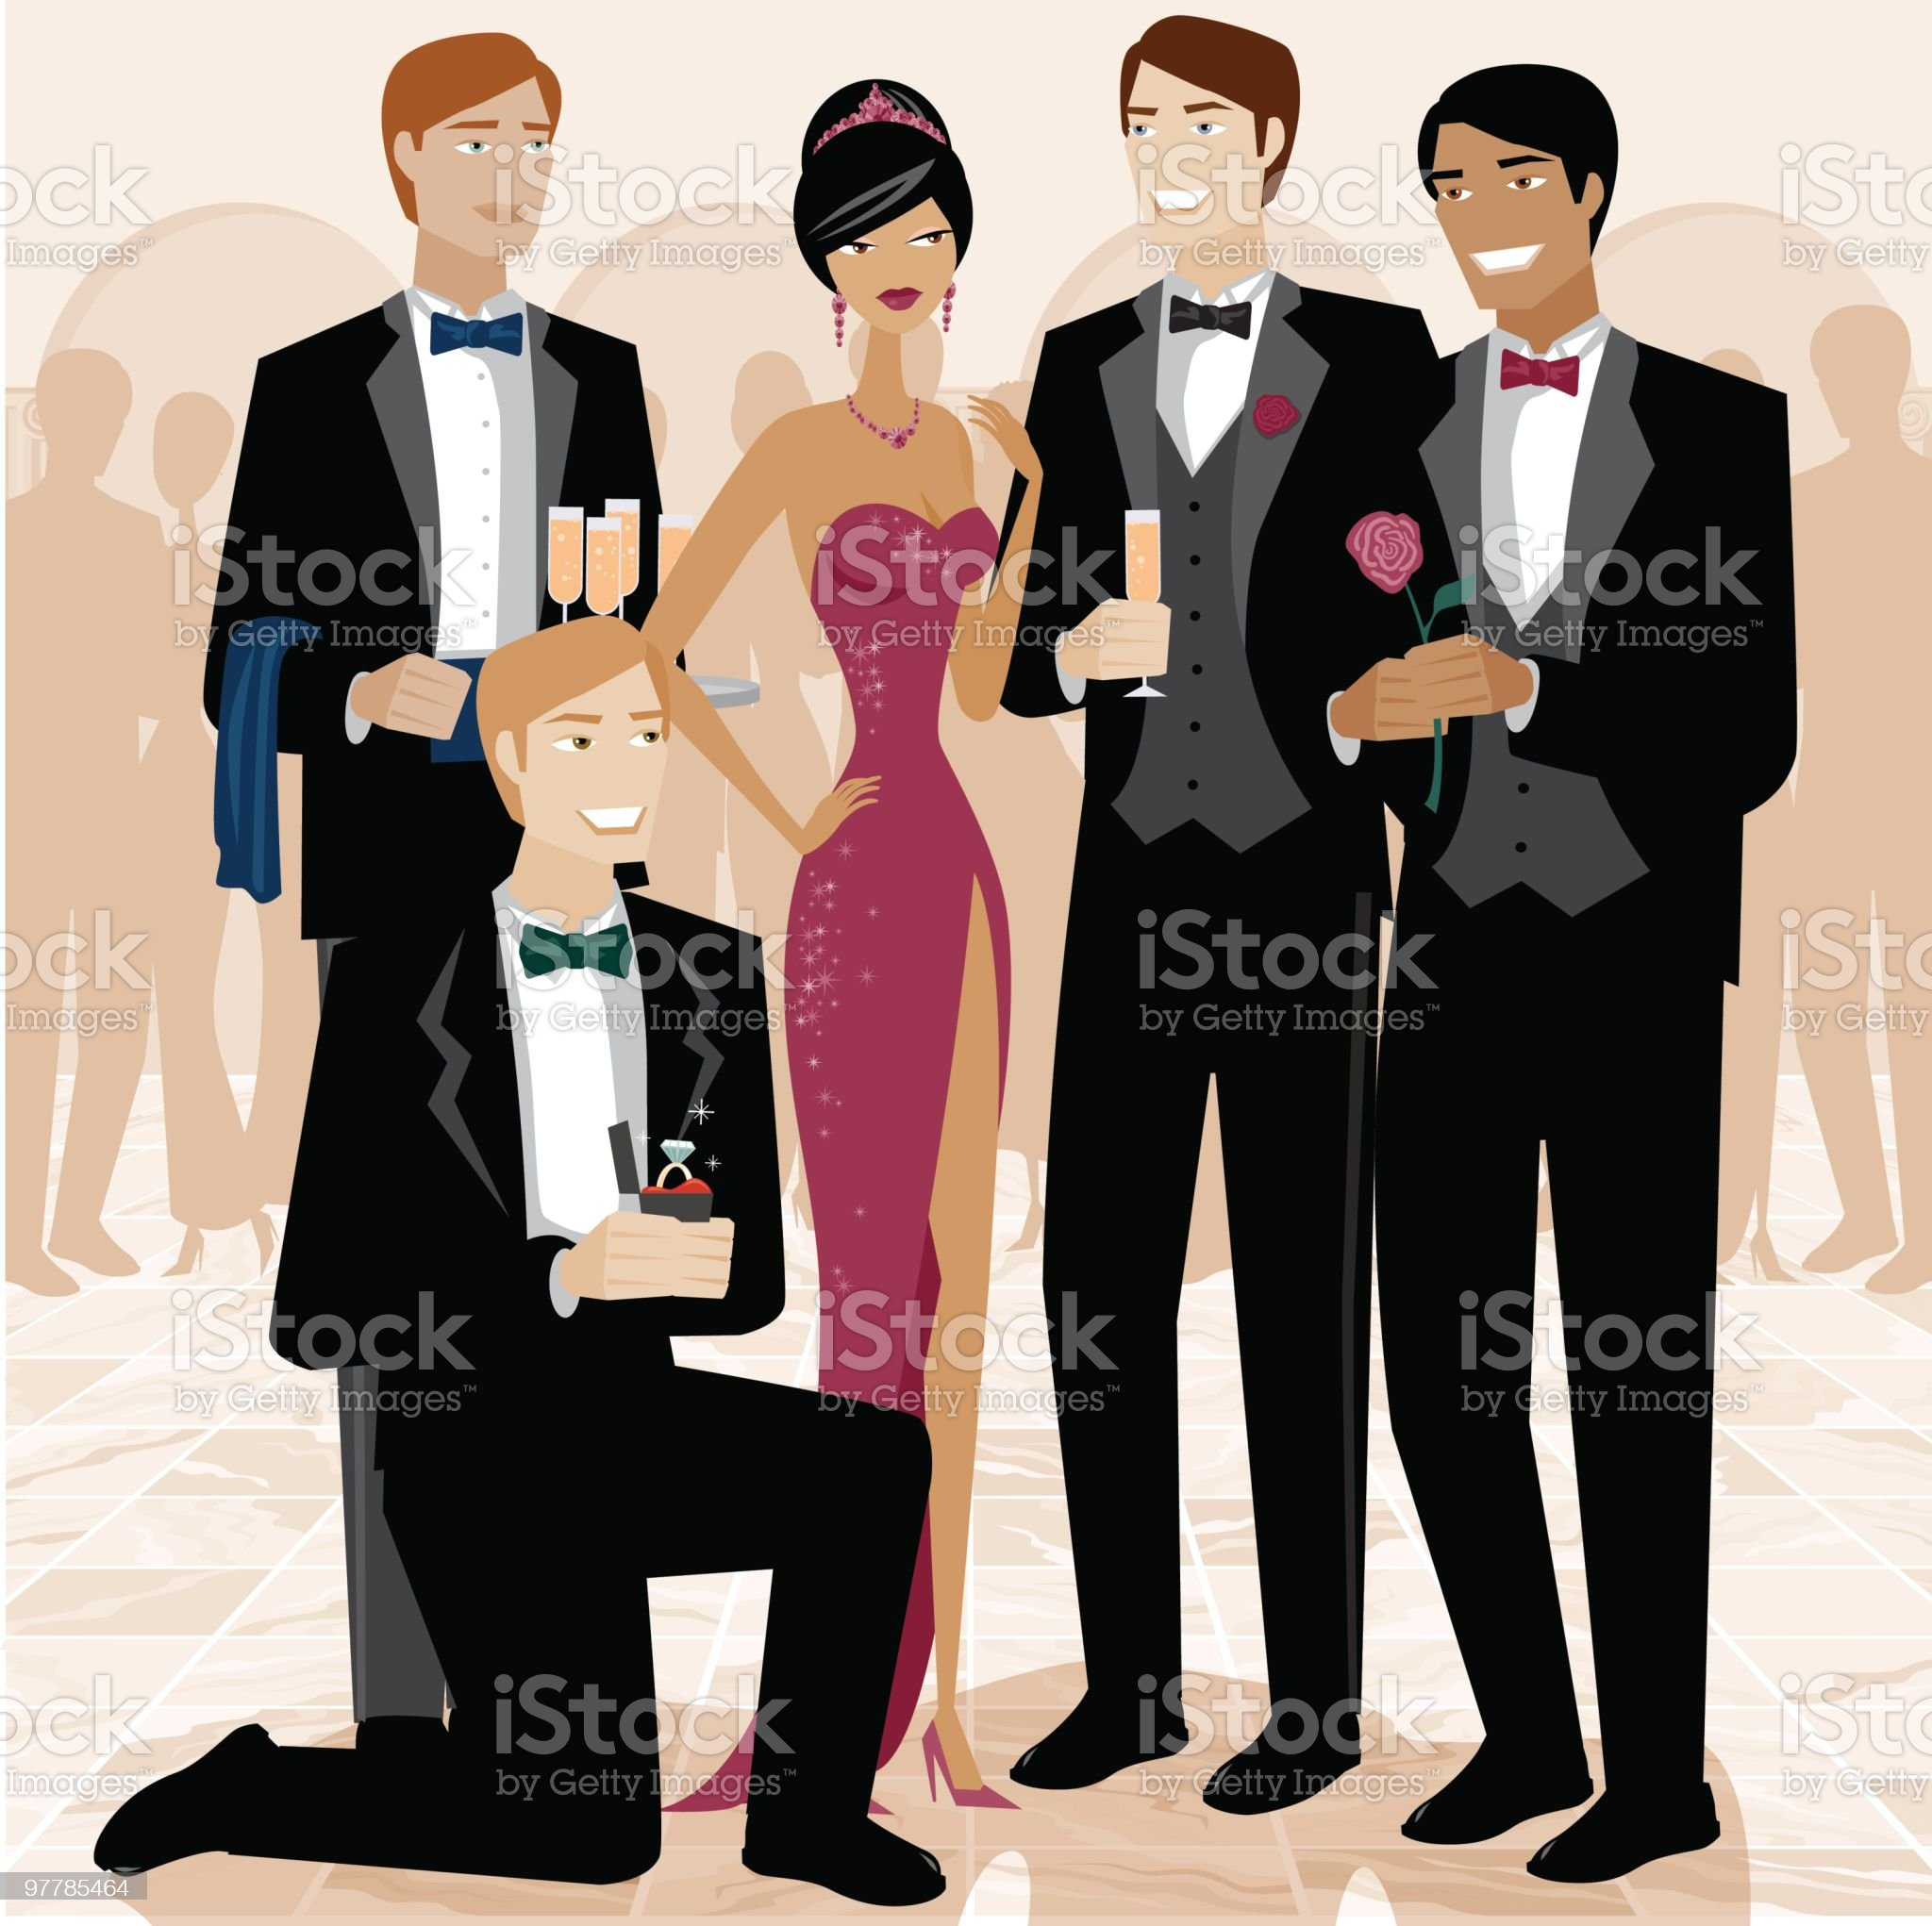 Woman Surrounded by Admirers royalty-free stock vector art